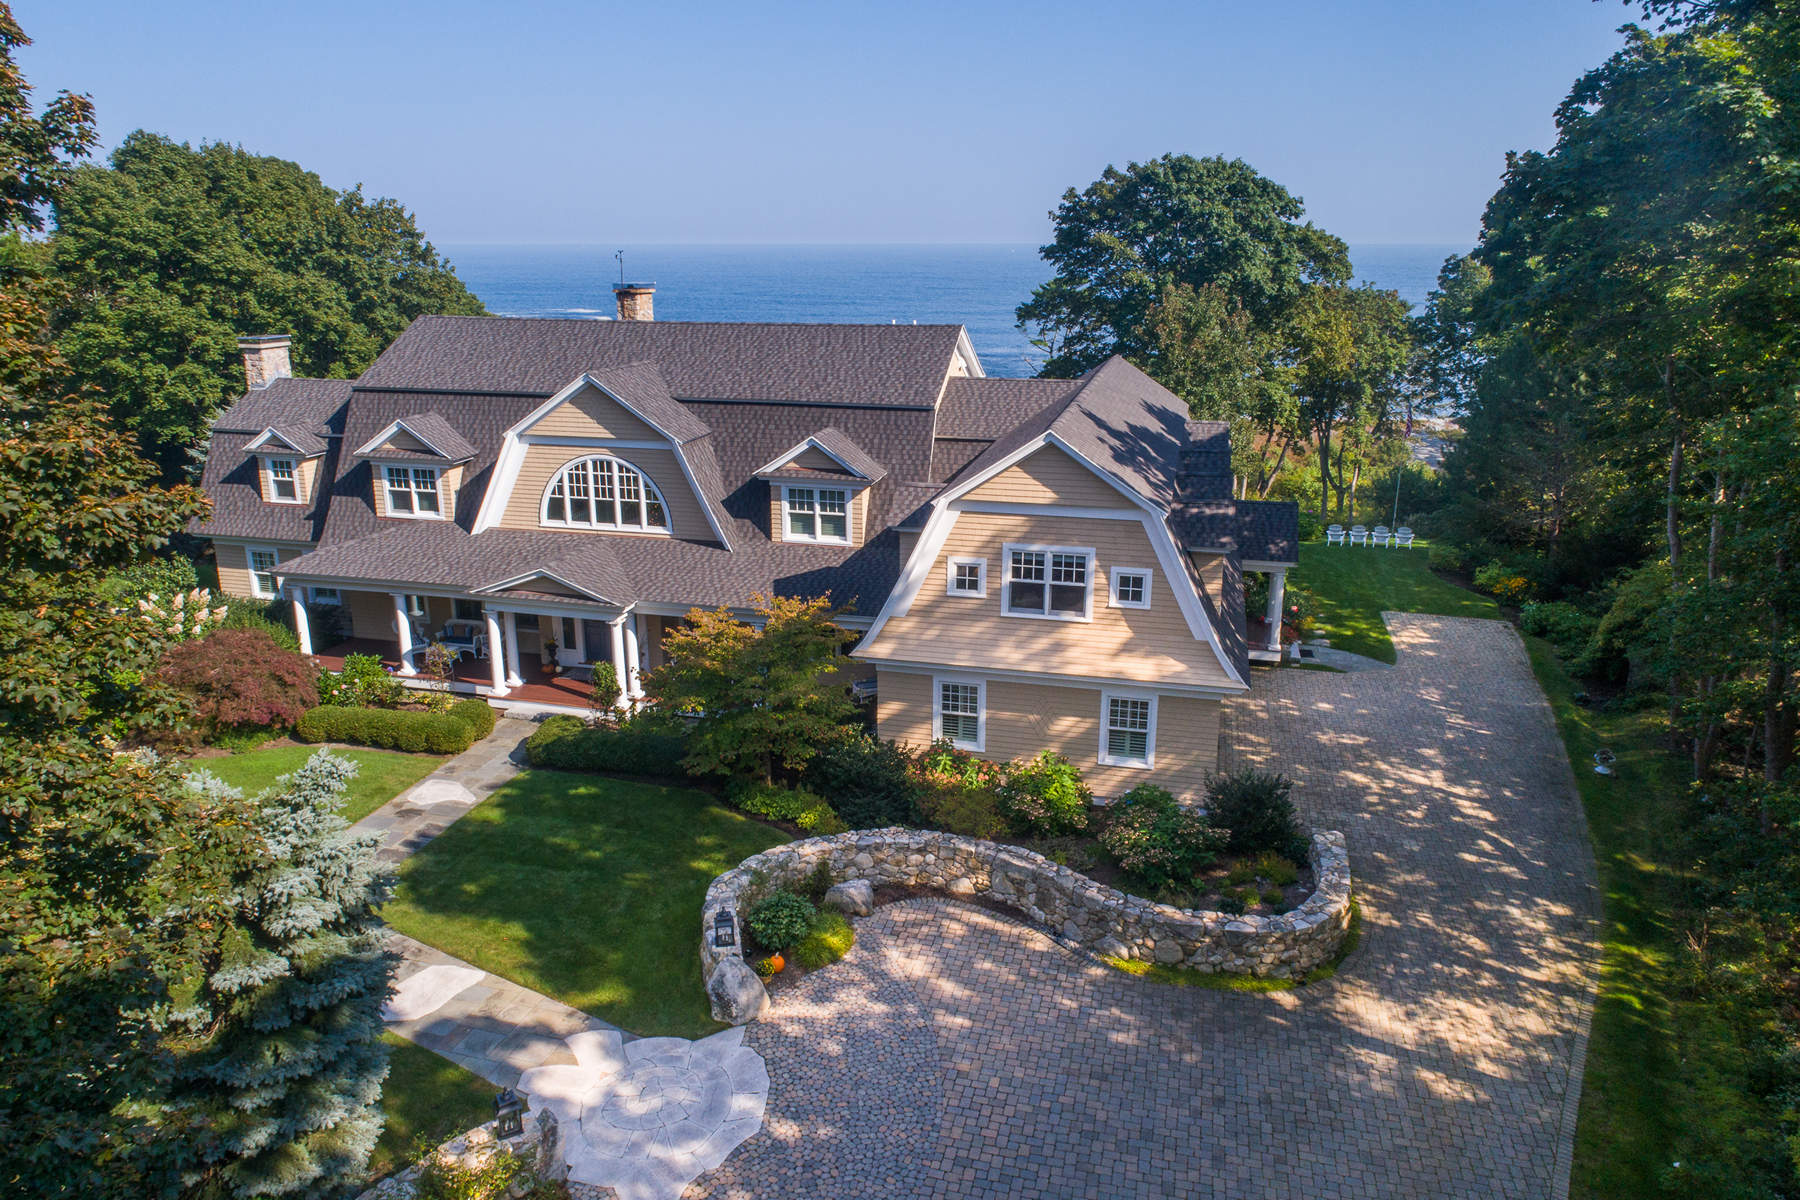 Maison unifamiliale pour l Vente à Custom Ocean View Home in Cape Neddick 65 Agamenticus Avenue, York, Maine, 03902 États-Unis